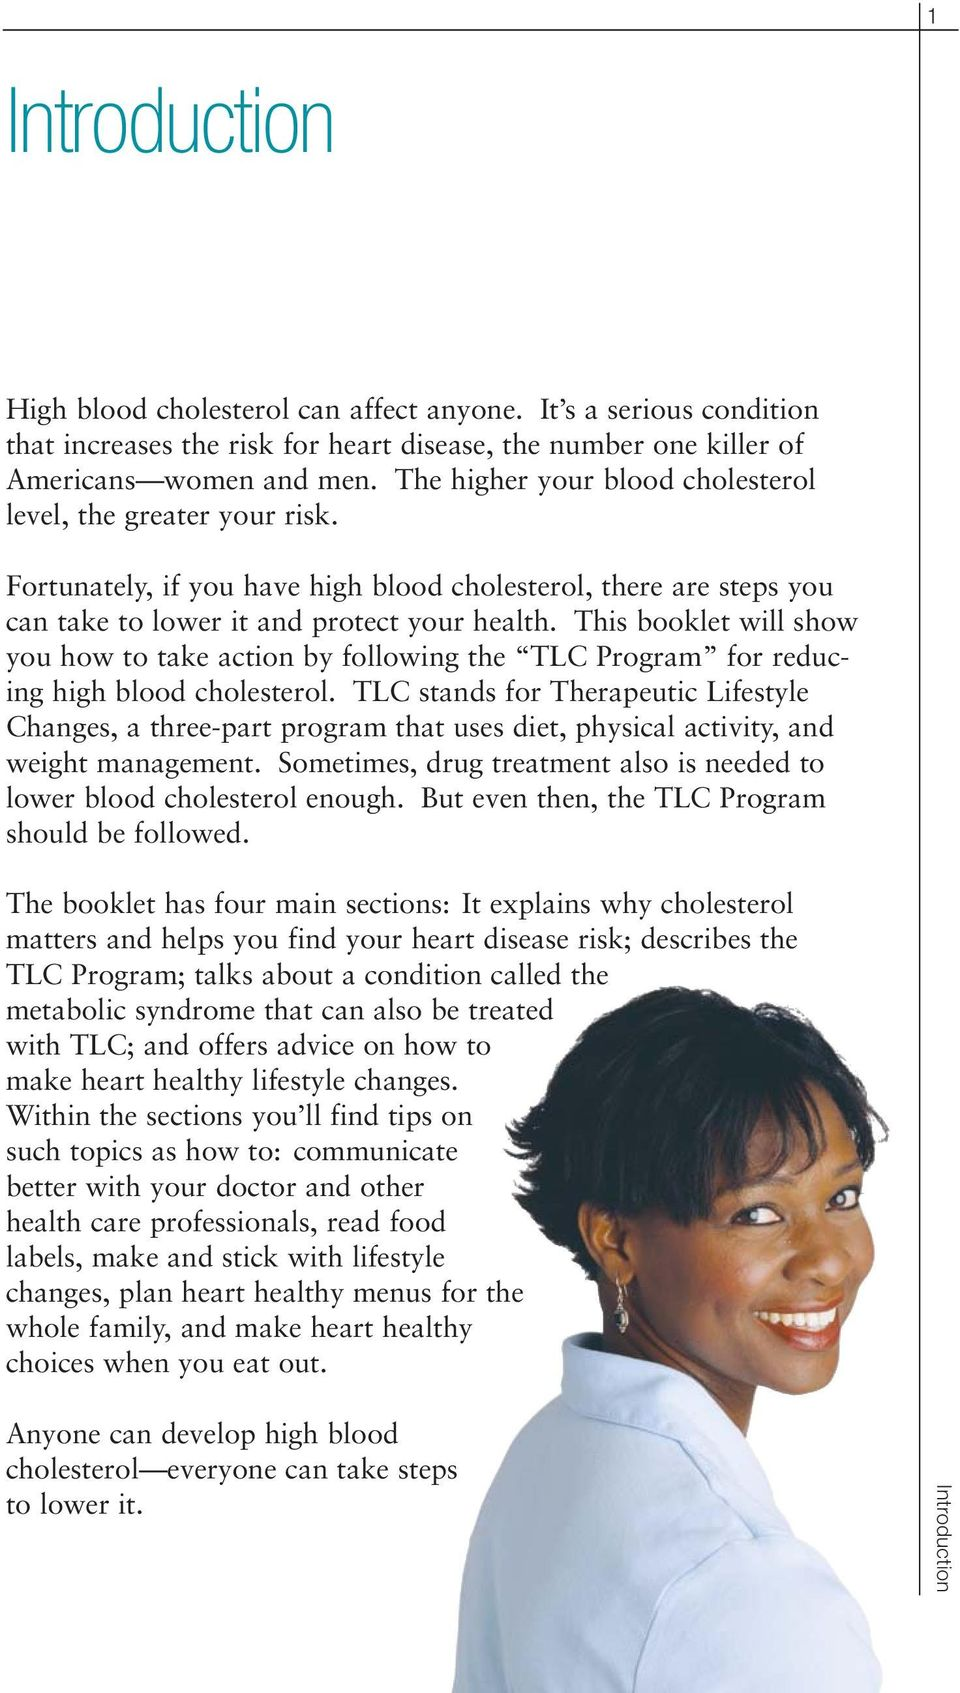 This booklet will show you how to take action by following the TLC Program for reducing high blood cholesterol.